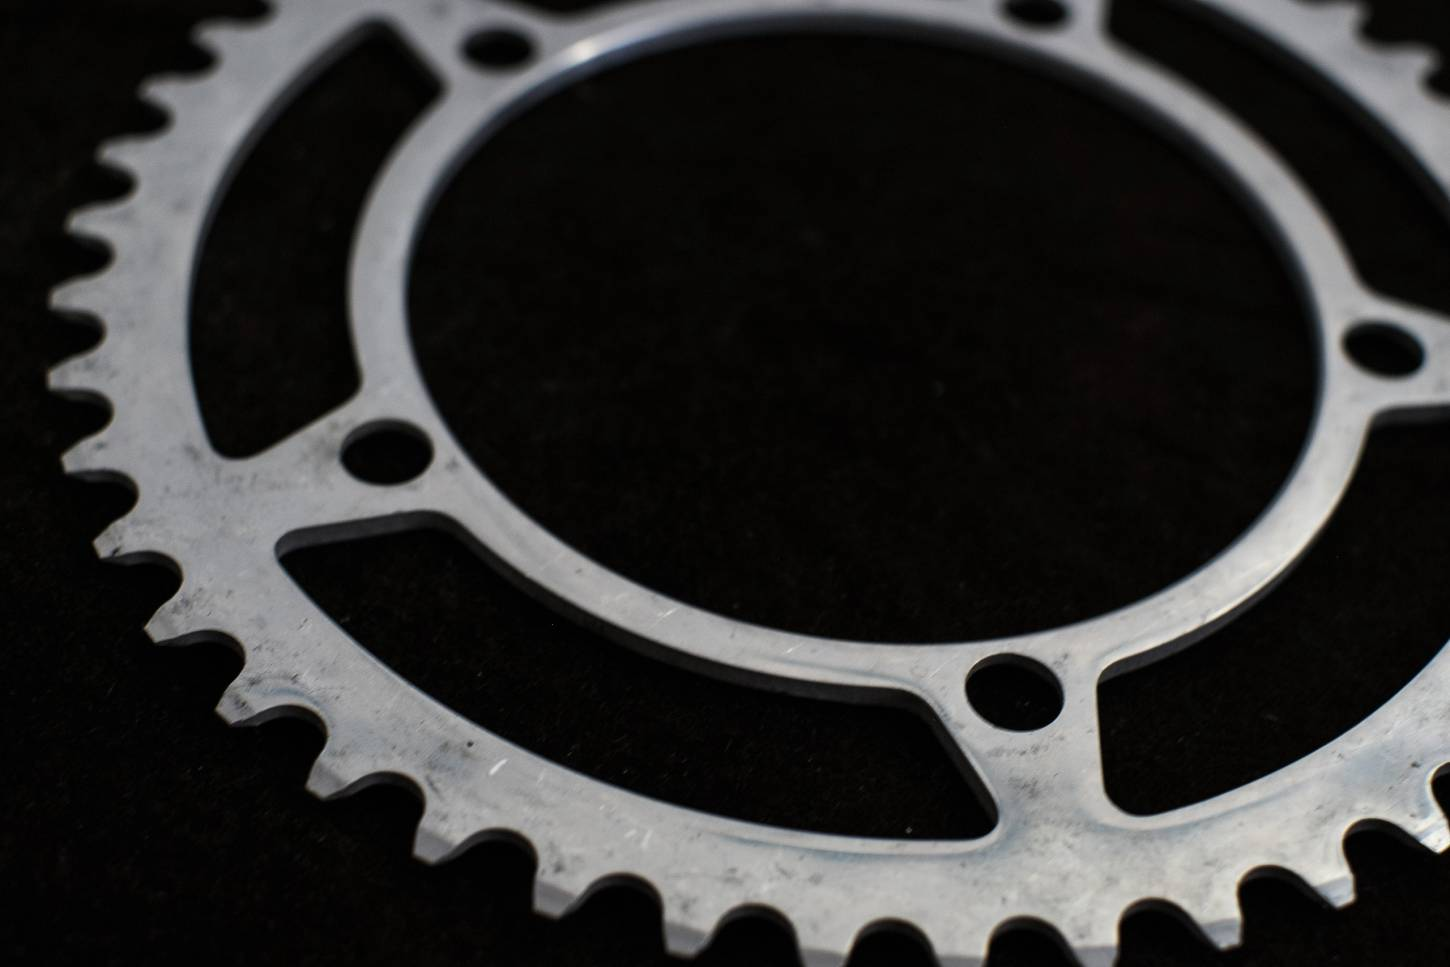 Stronglight chainring 122 LK 45 teeth